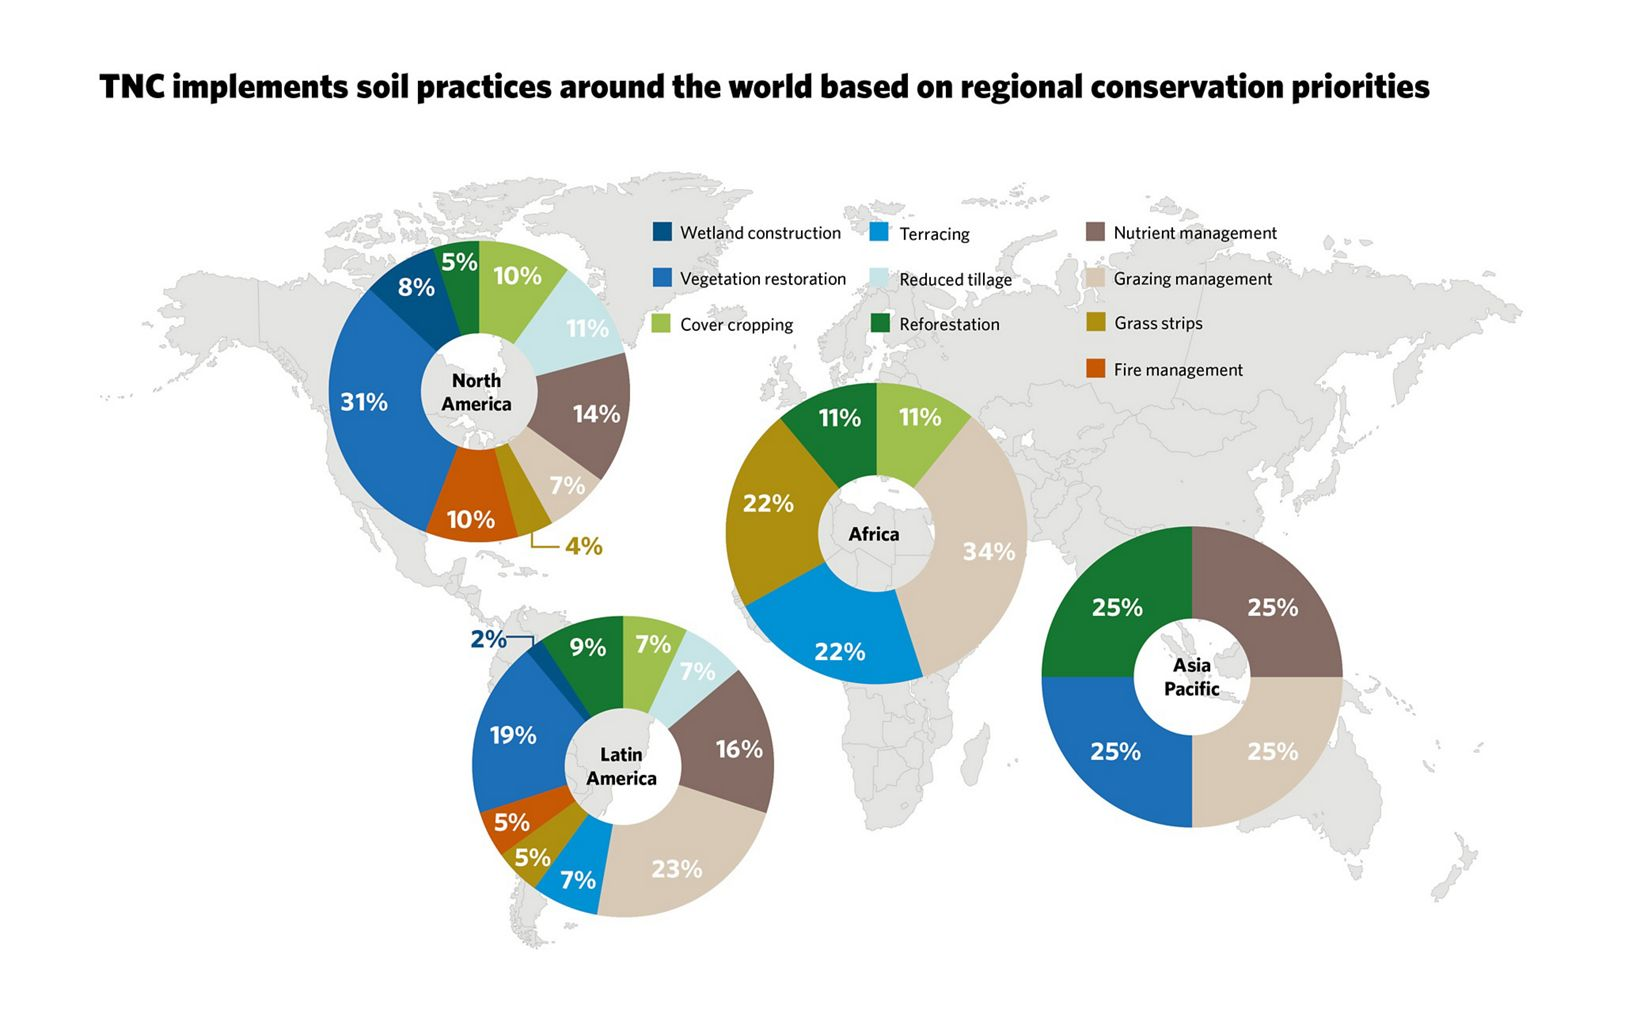 Soil practices around the world